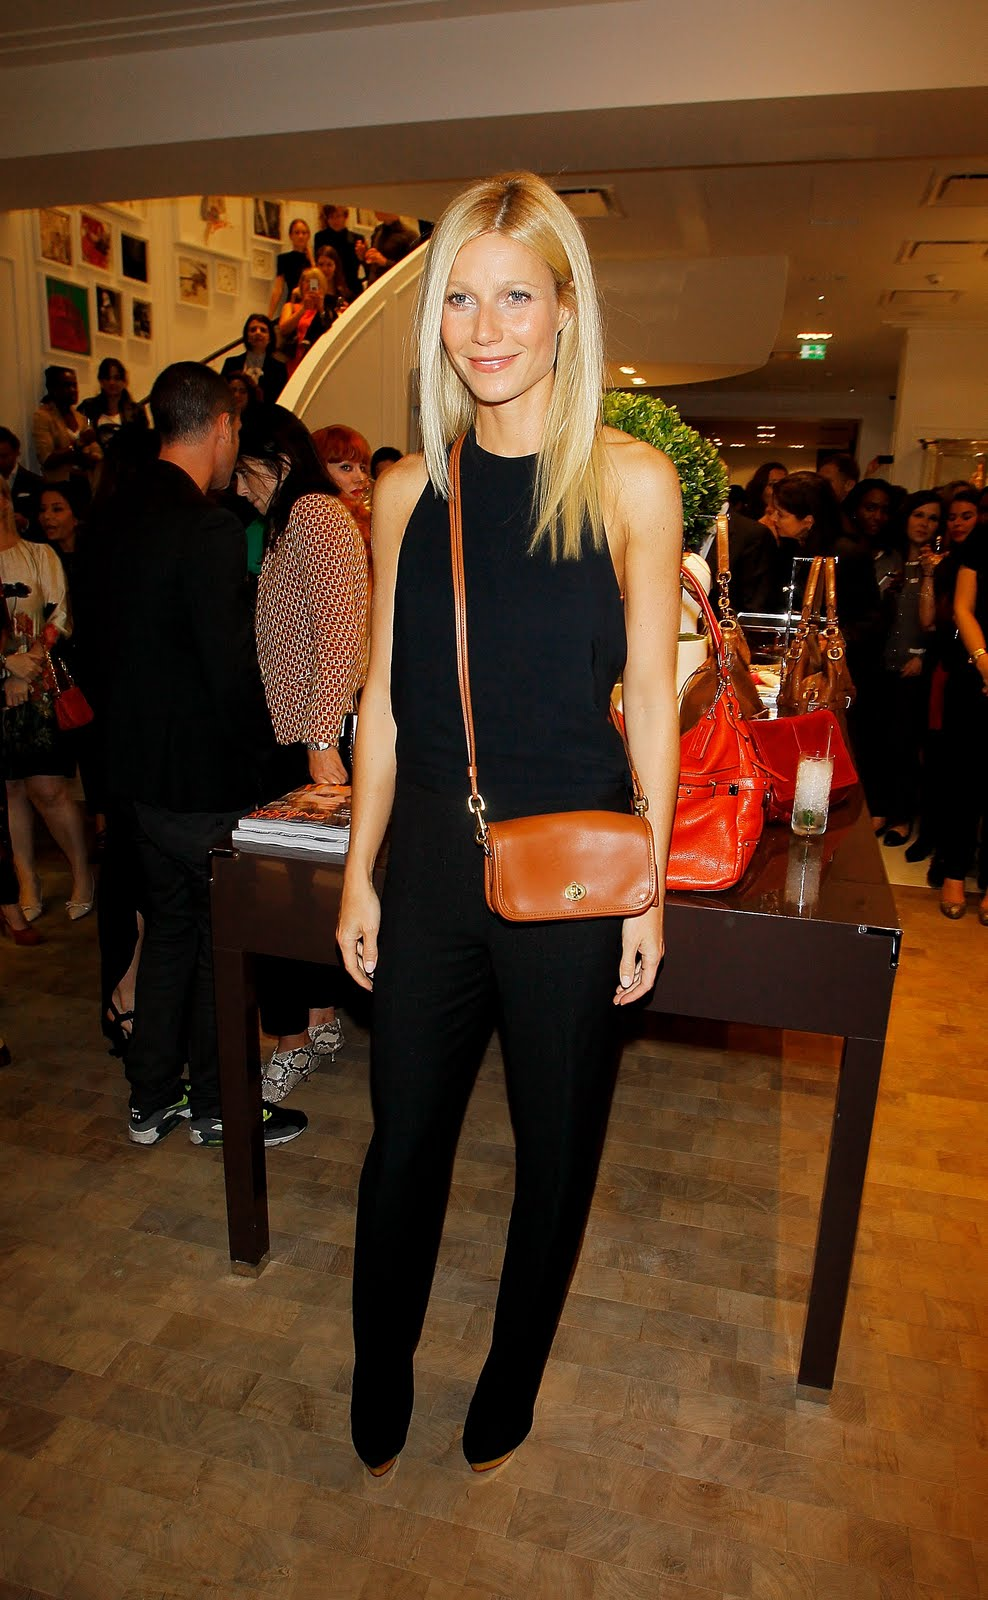 Le Laid/The Ugly: Best Dressed of The Week